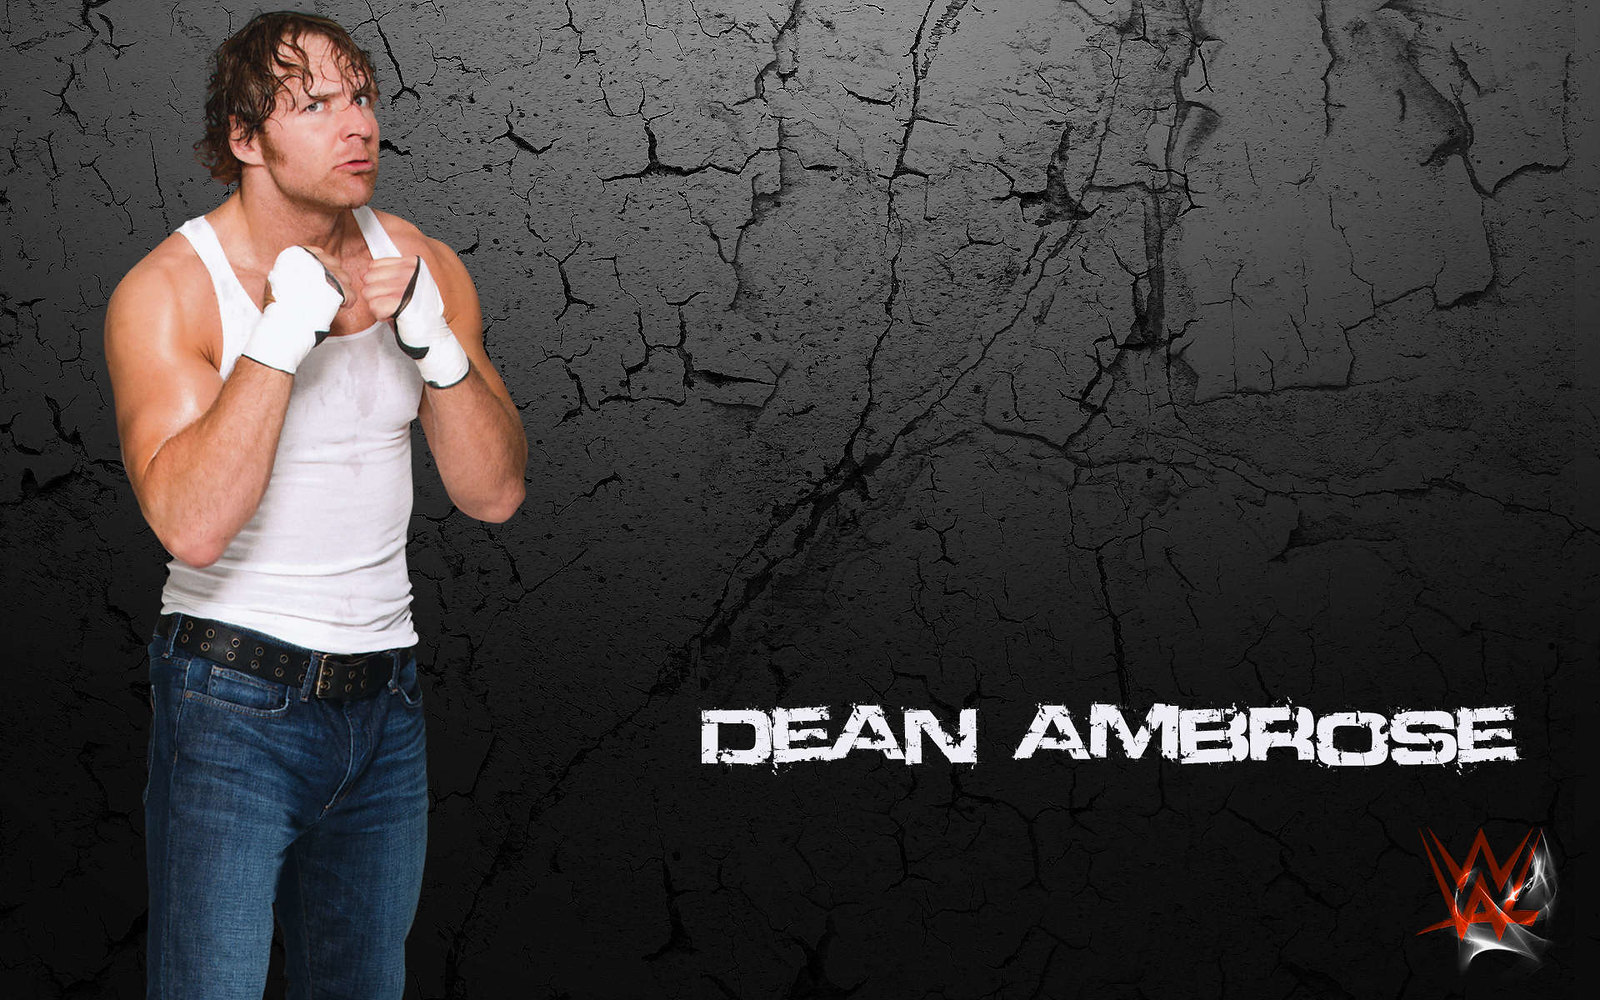 Top 15 Dean Ambrose Wallpapers And Pictures